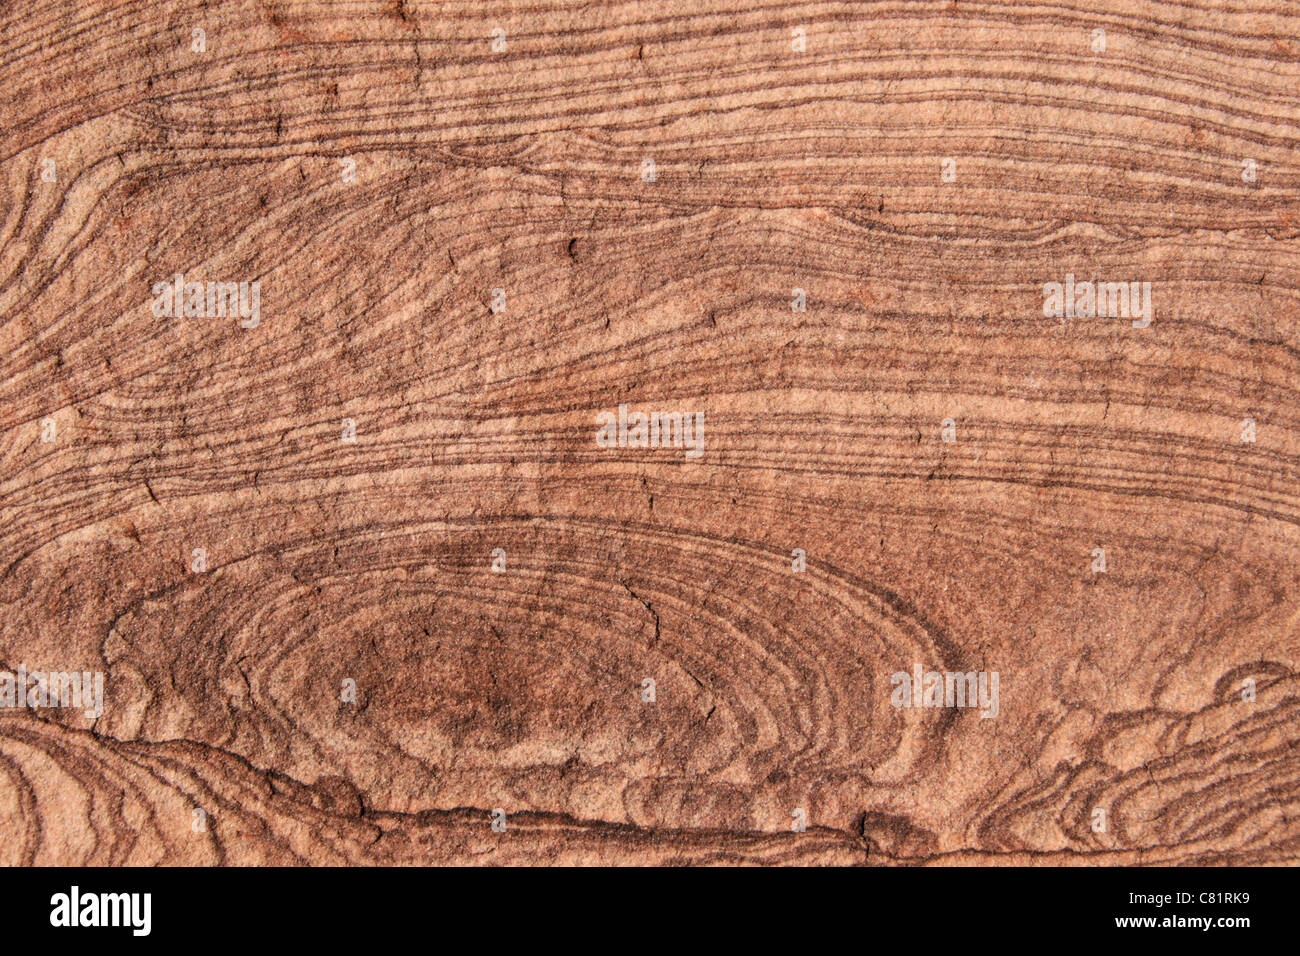 sandstone background surface with banded texture Stock Photo